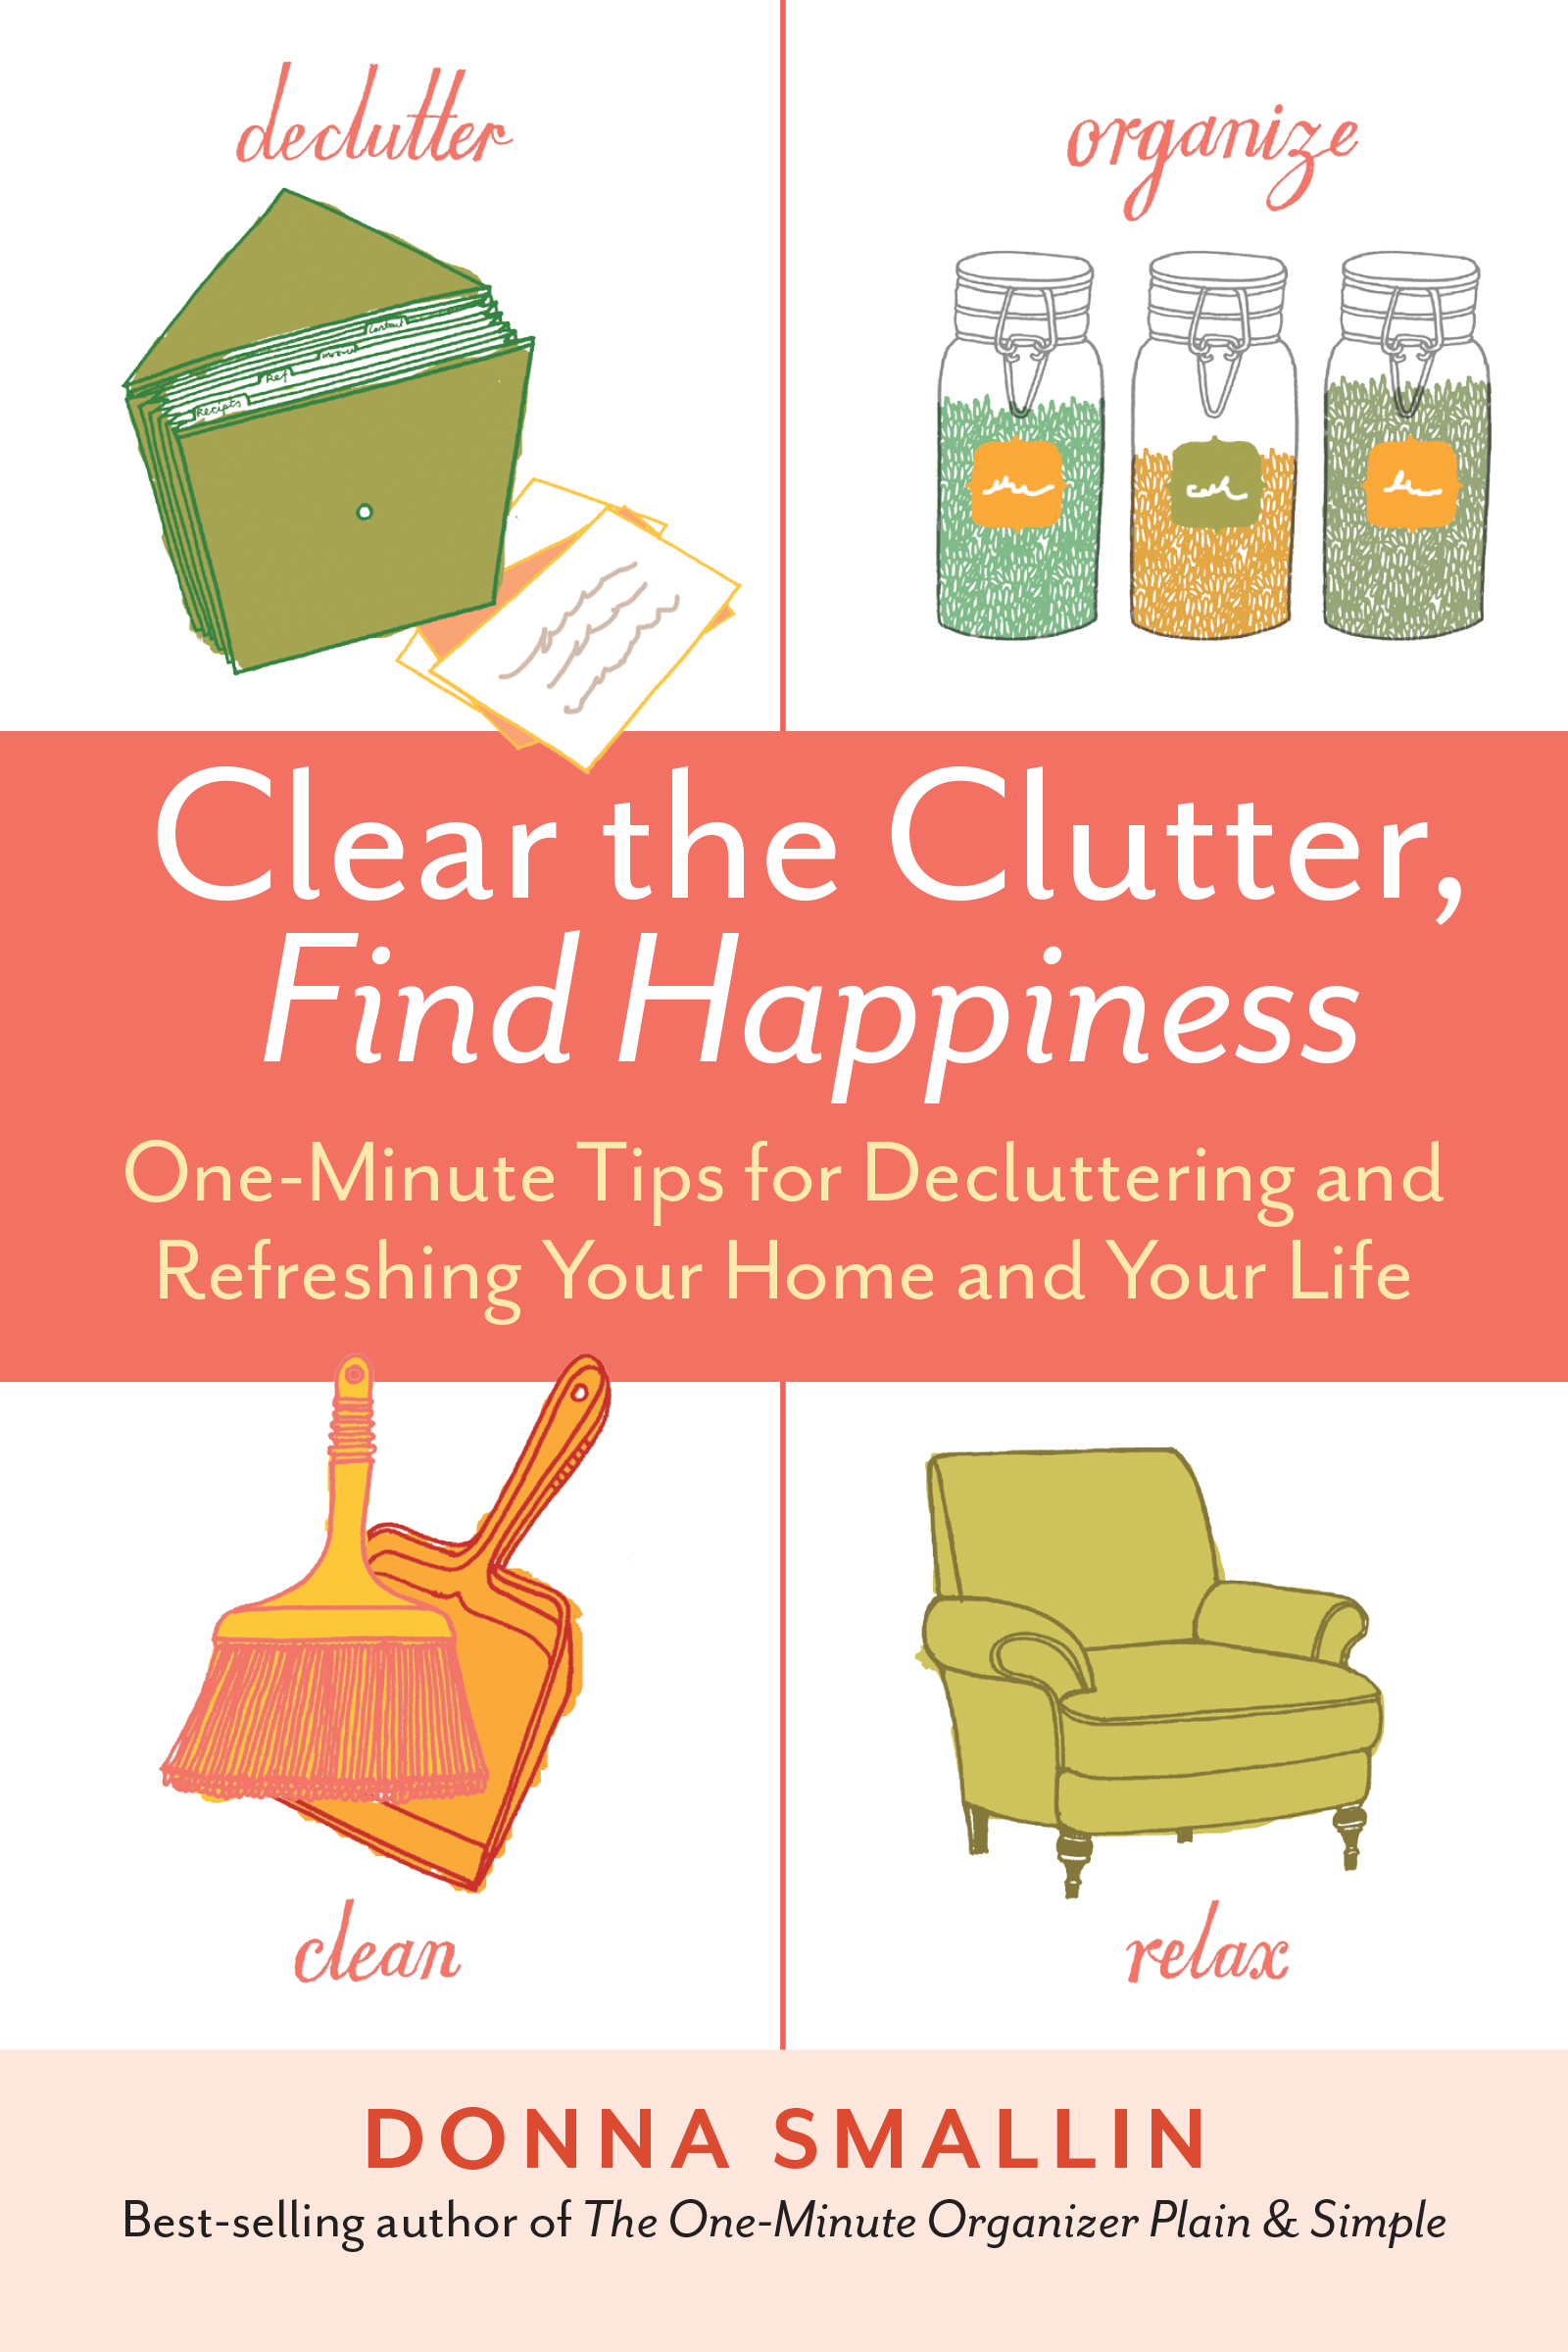 Clear the Clutter, Find Happiness One-Minute Tips for Decluttering and Refreshing Your Home and Your Life - Donna Smallin